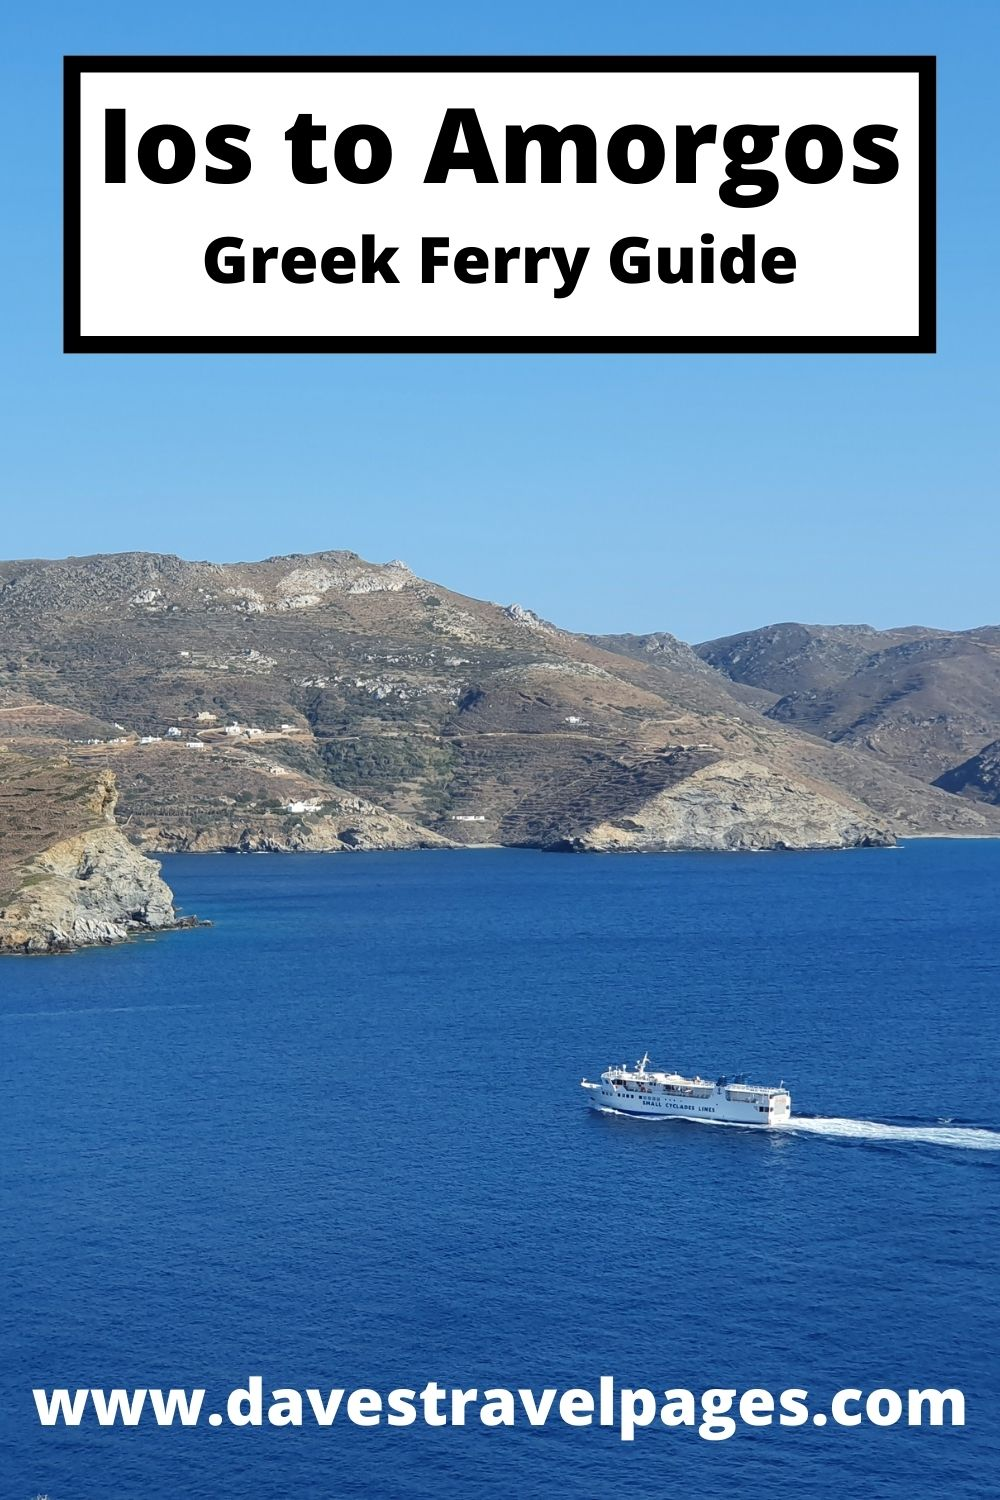 How to get from Ios to Amorgos by ferry